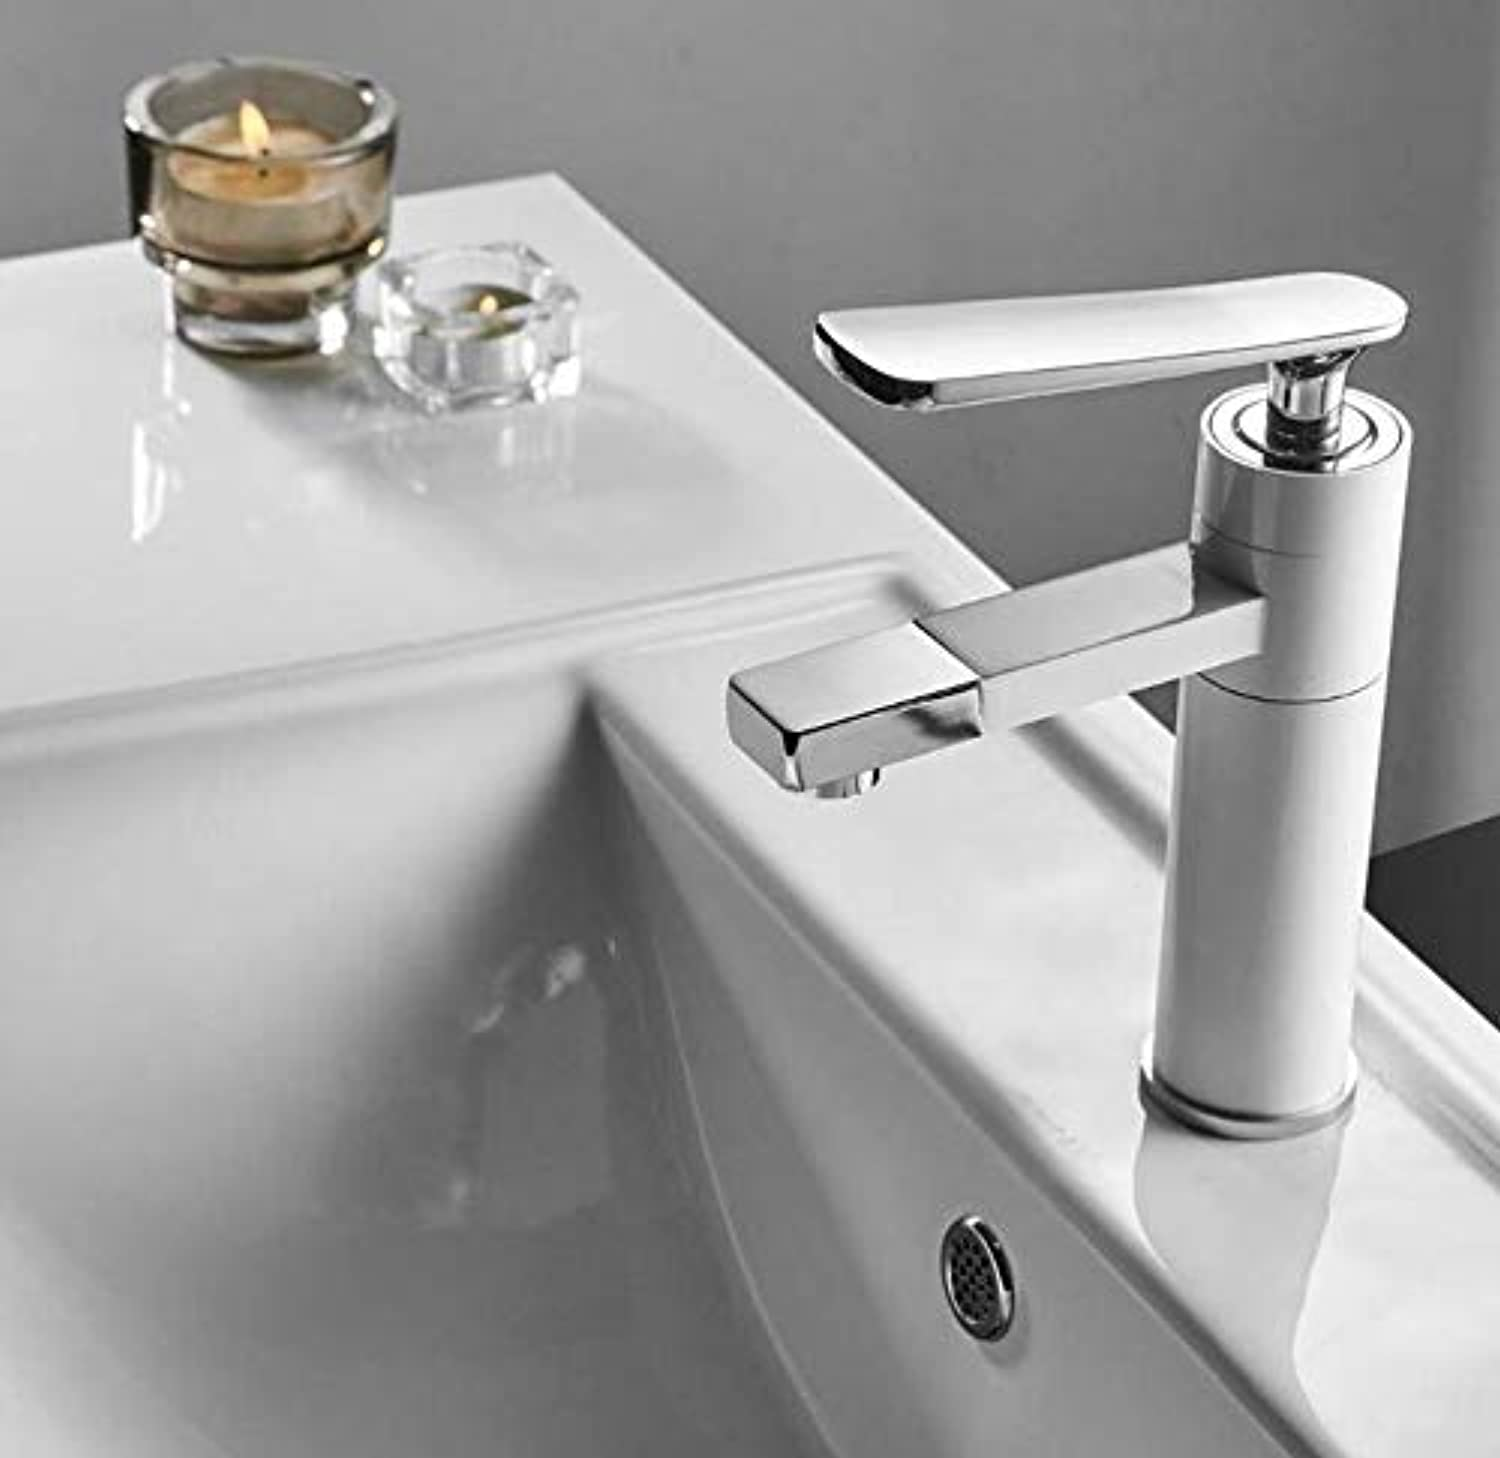 Retro Faucet Chrome Faucet Tap Bathroom Sink Faucet Single Handle Hole Deck Mounted Wash Hot And Cold Mixer Tap